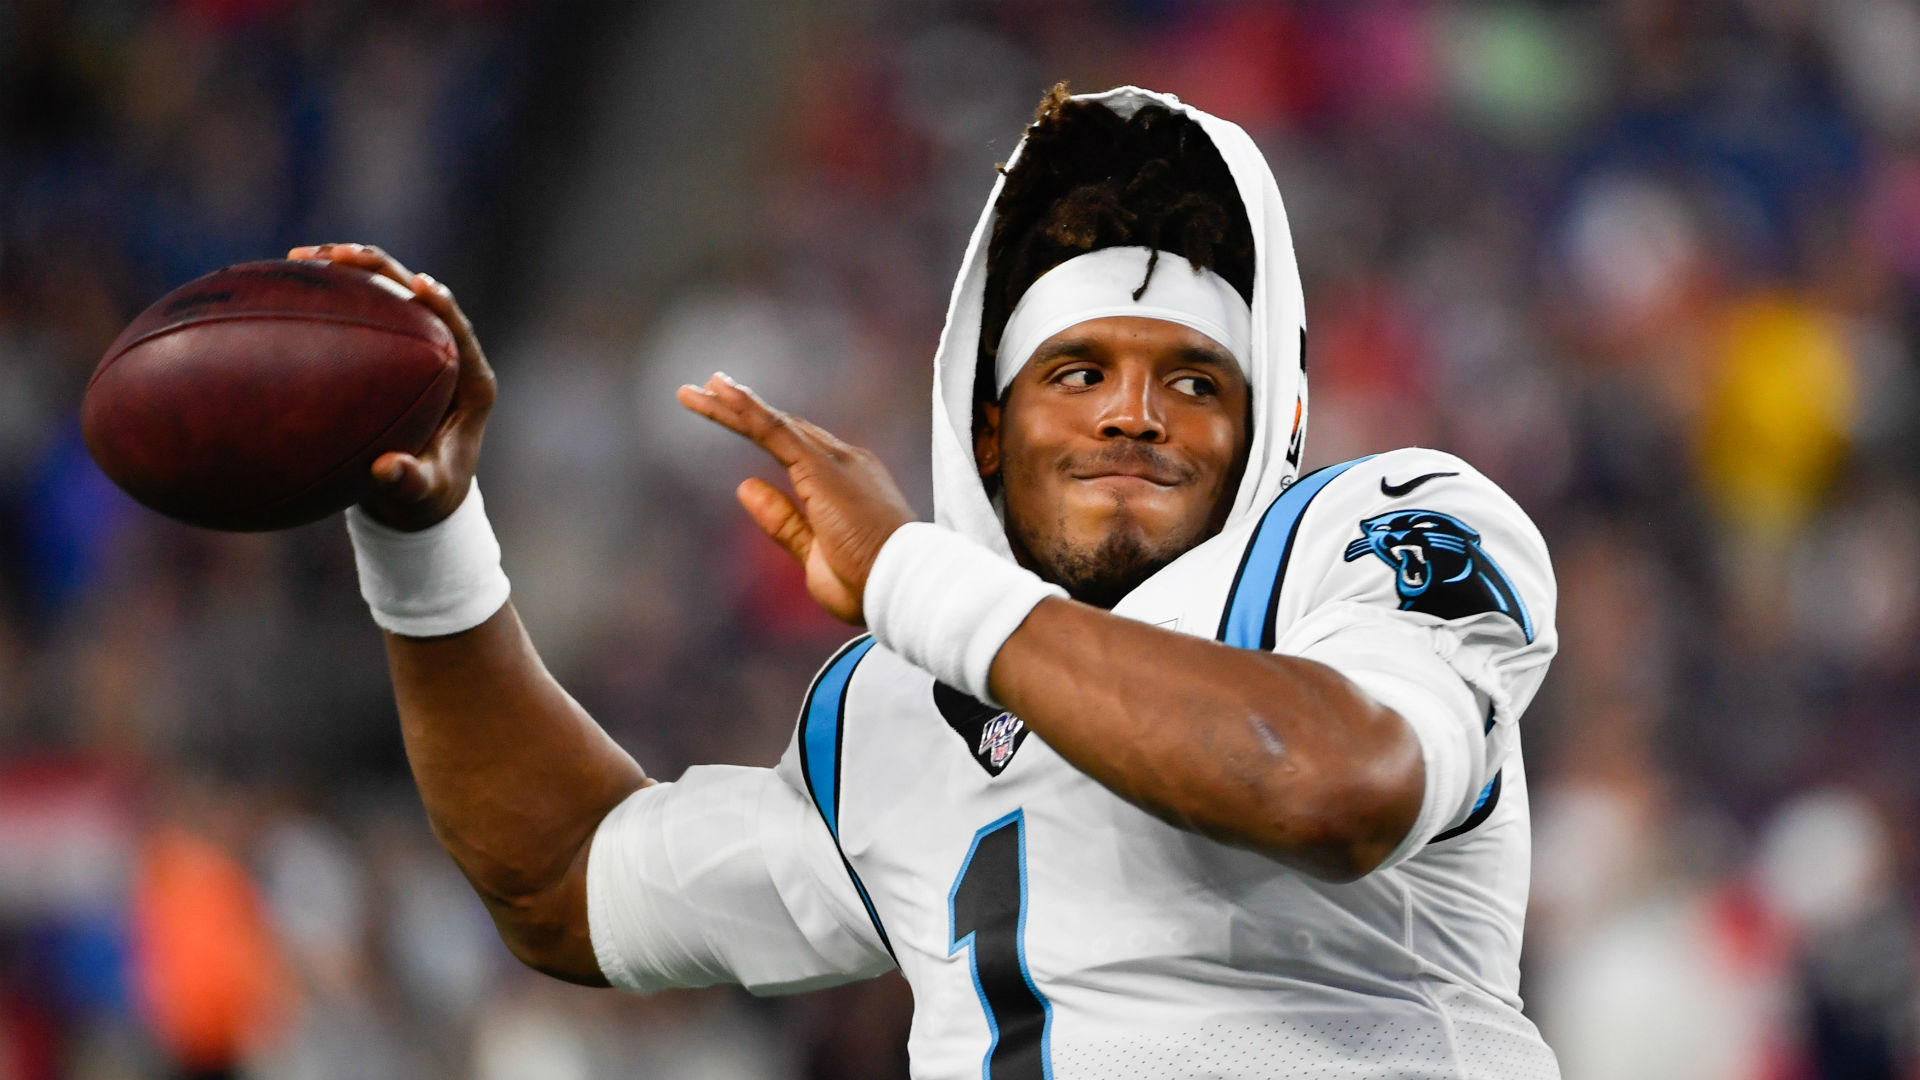 Photo of Cam Newton says Patriots contract is about respect, not cash